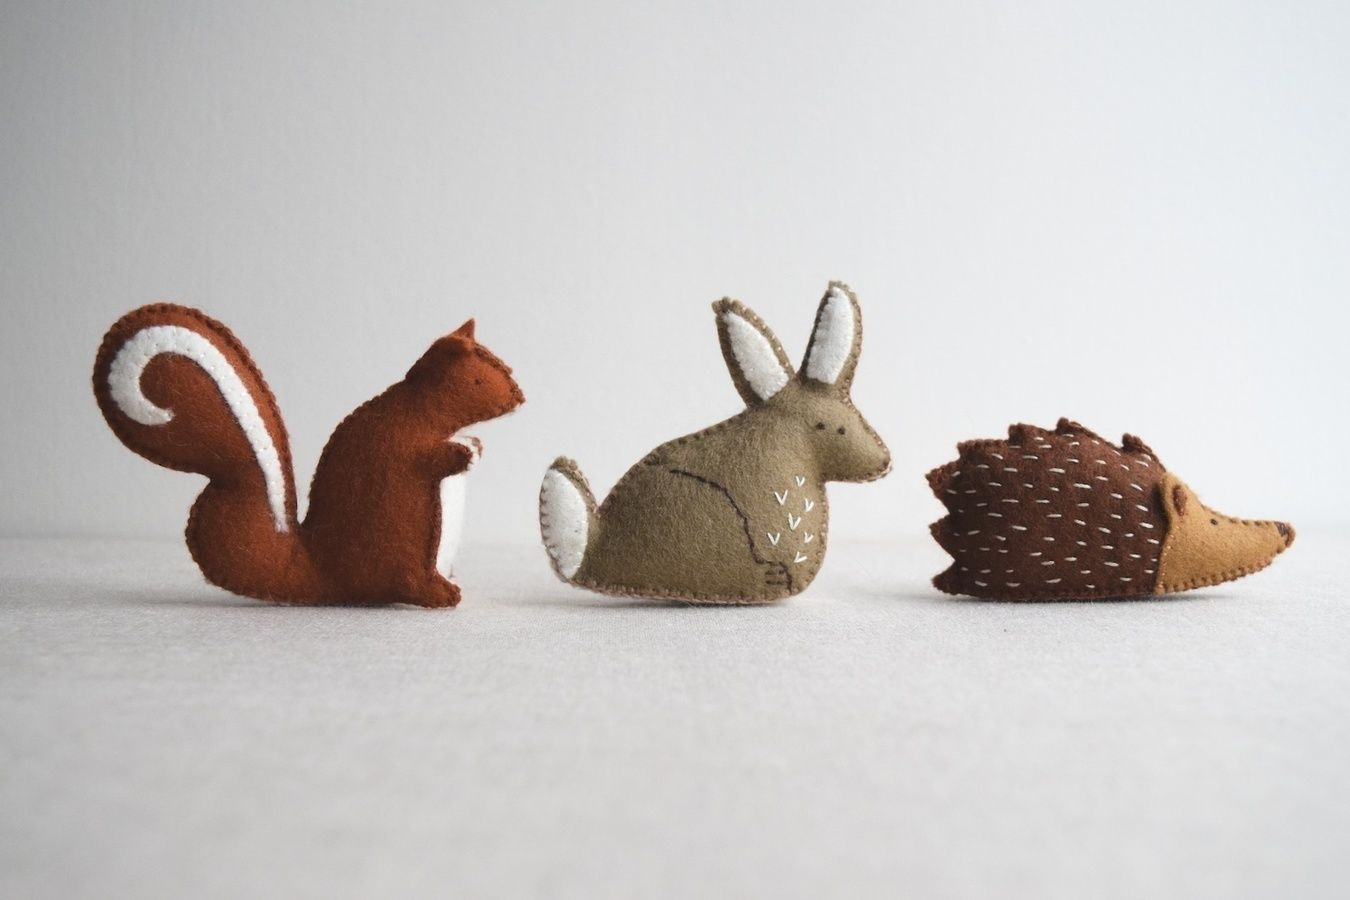 Woodland animal playset sewing pattern diy embroidery sewing download woodland animal playset sewing pattern diy embroidery sewing pattern for rabbit squirrel and jeuxipadfo Image collections